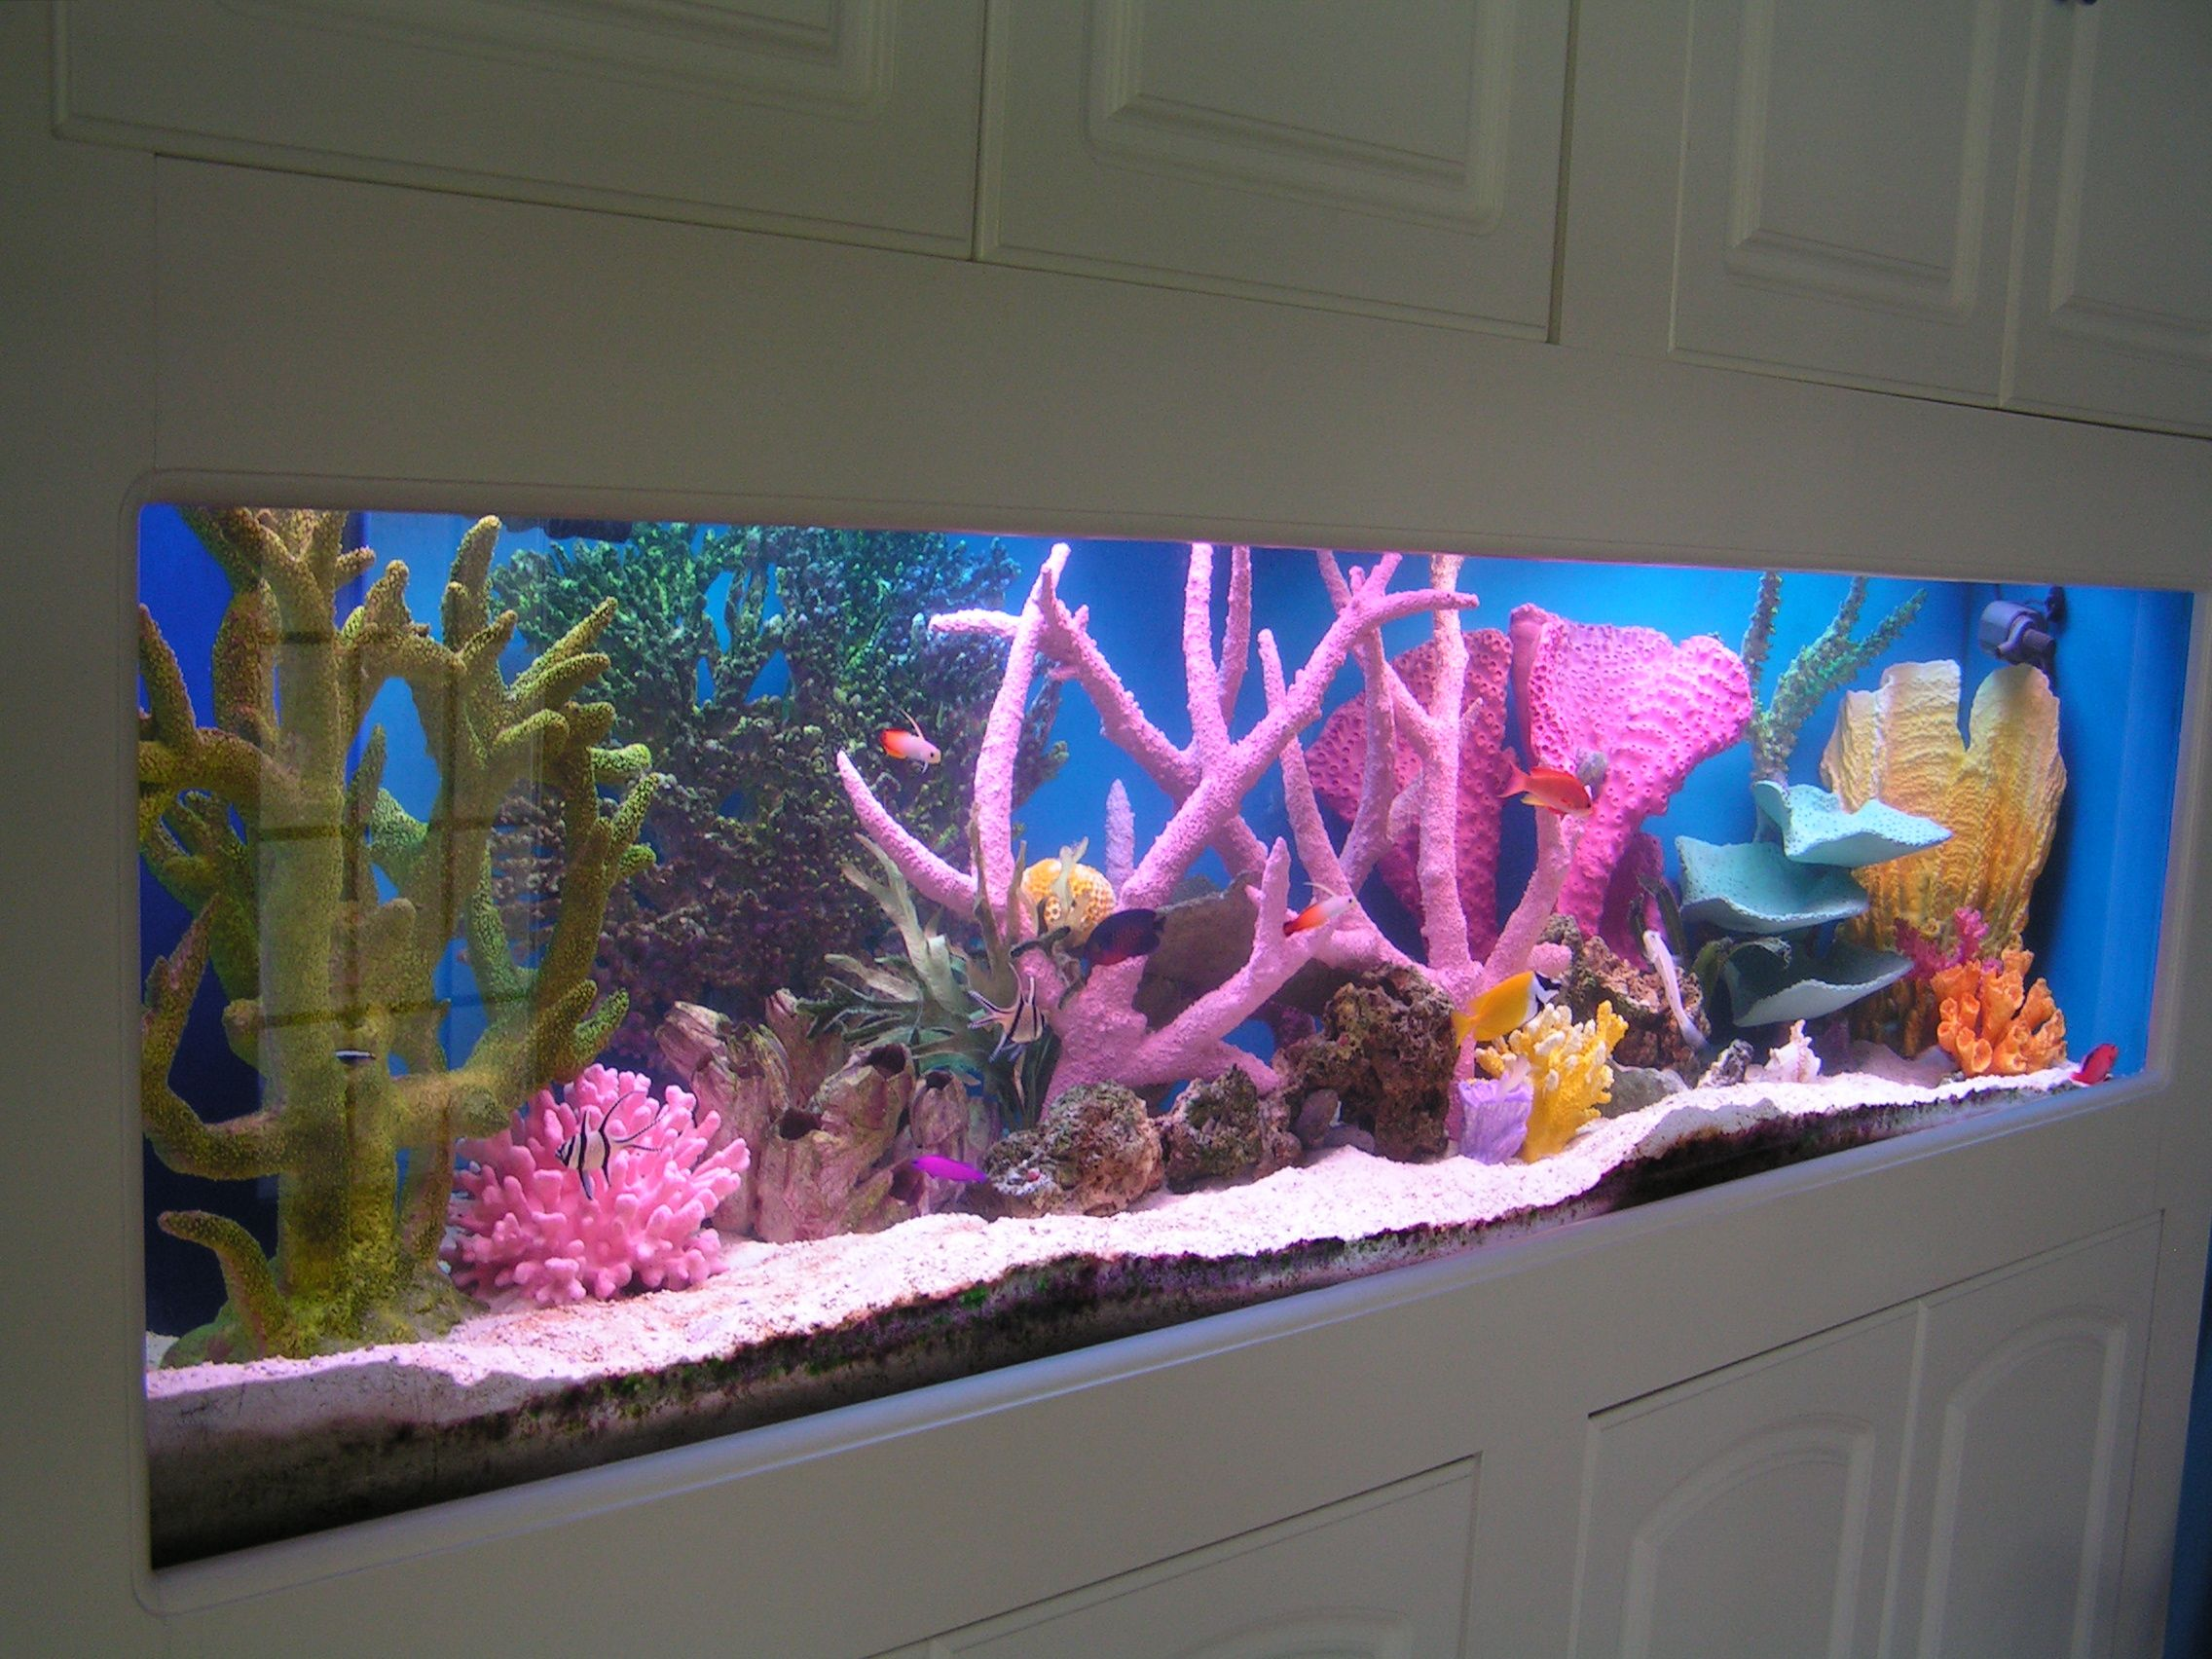 Fish aquarium olx delhi - Fish Tank Quikr Pune I Want A Salt Water Fish Tank